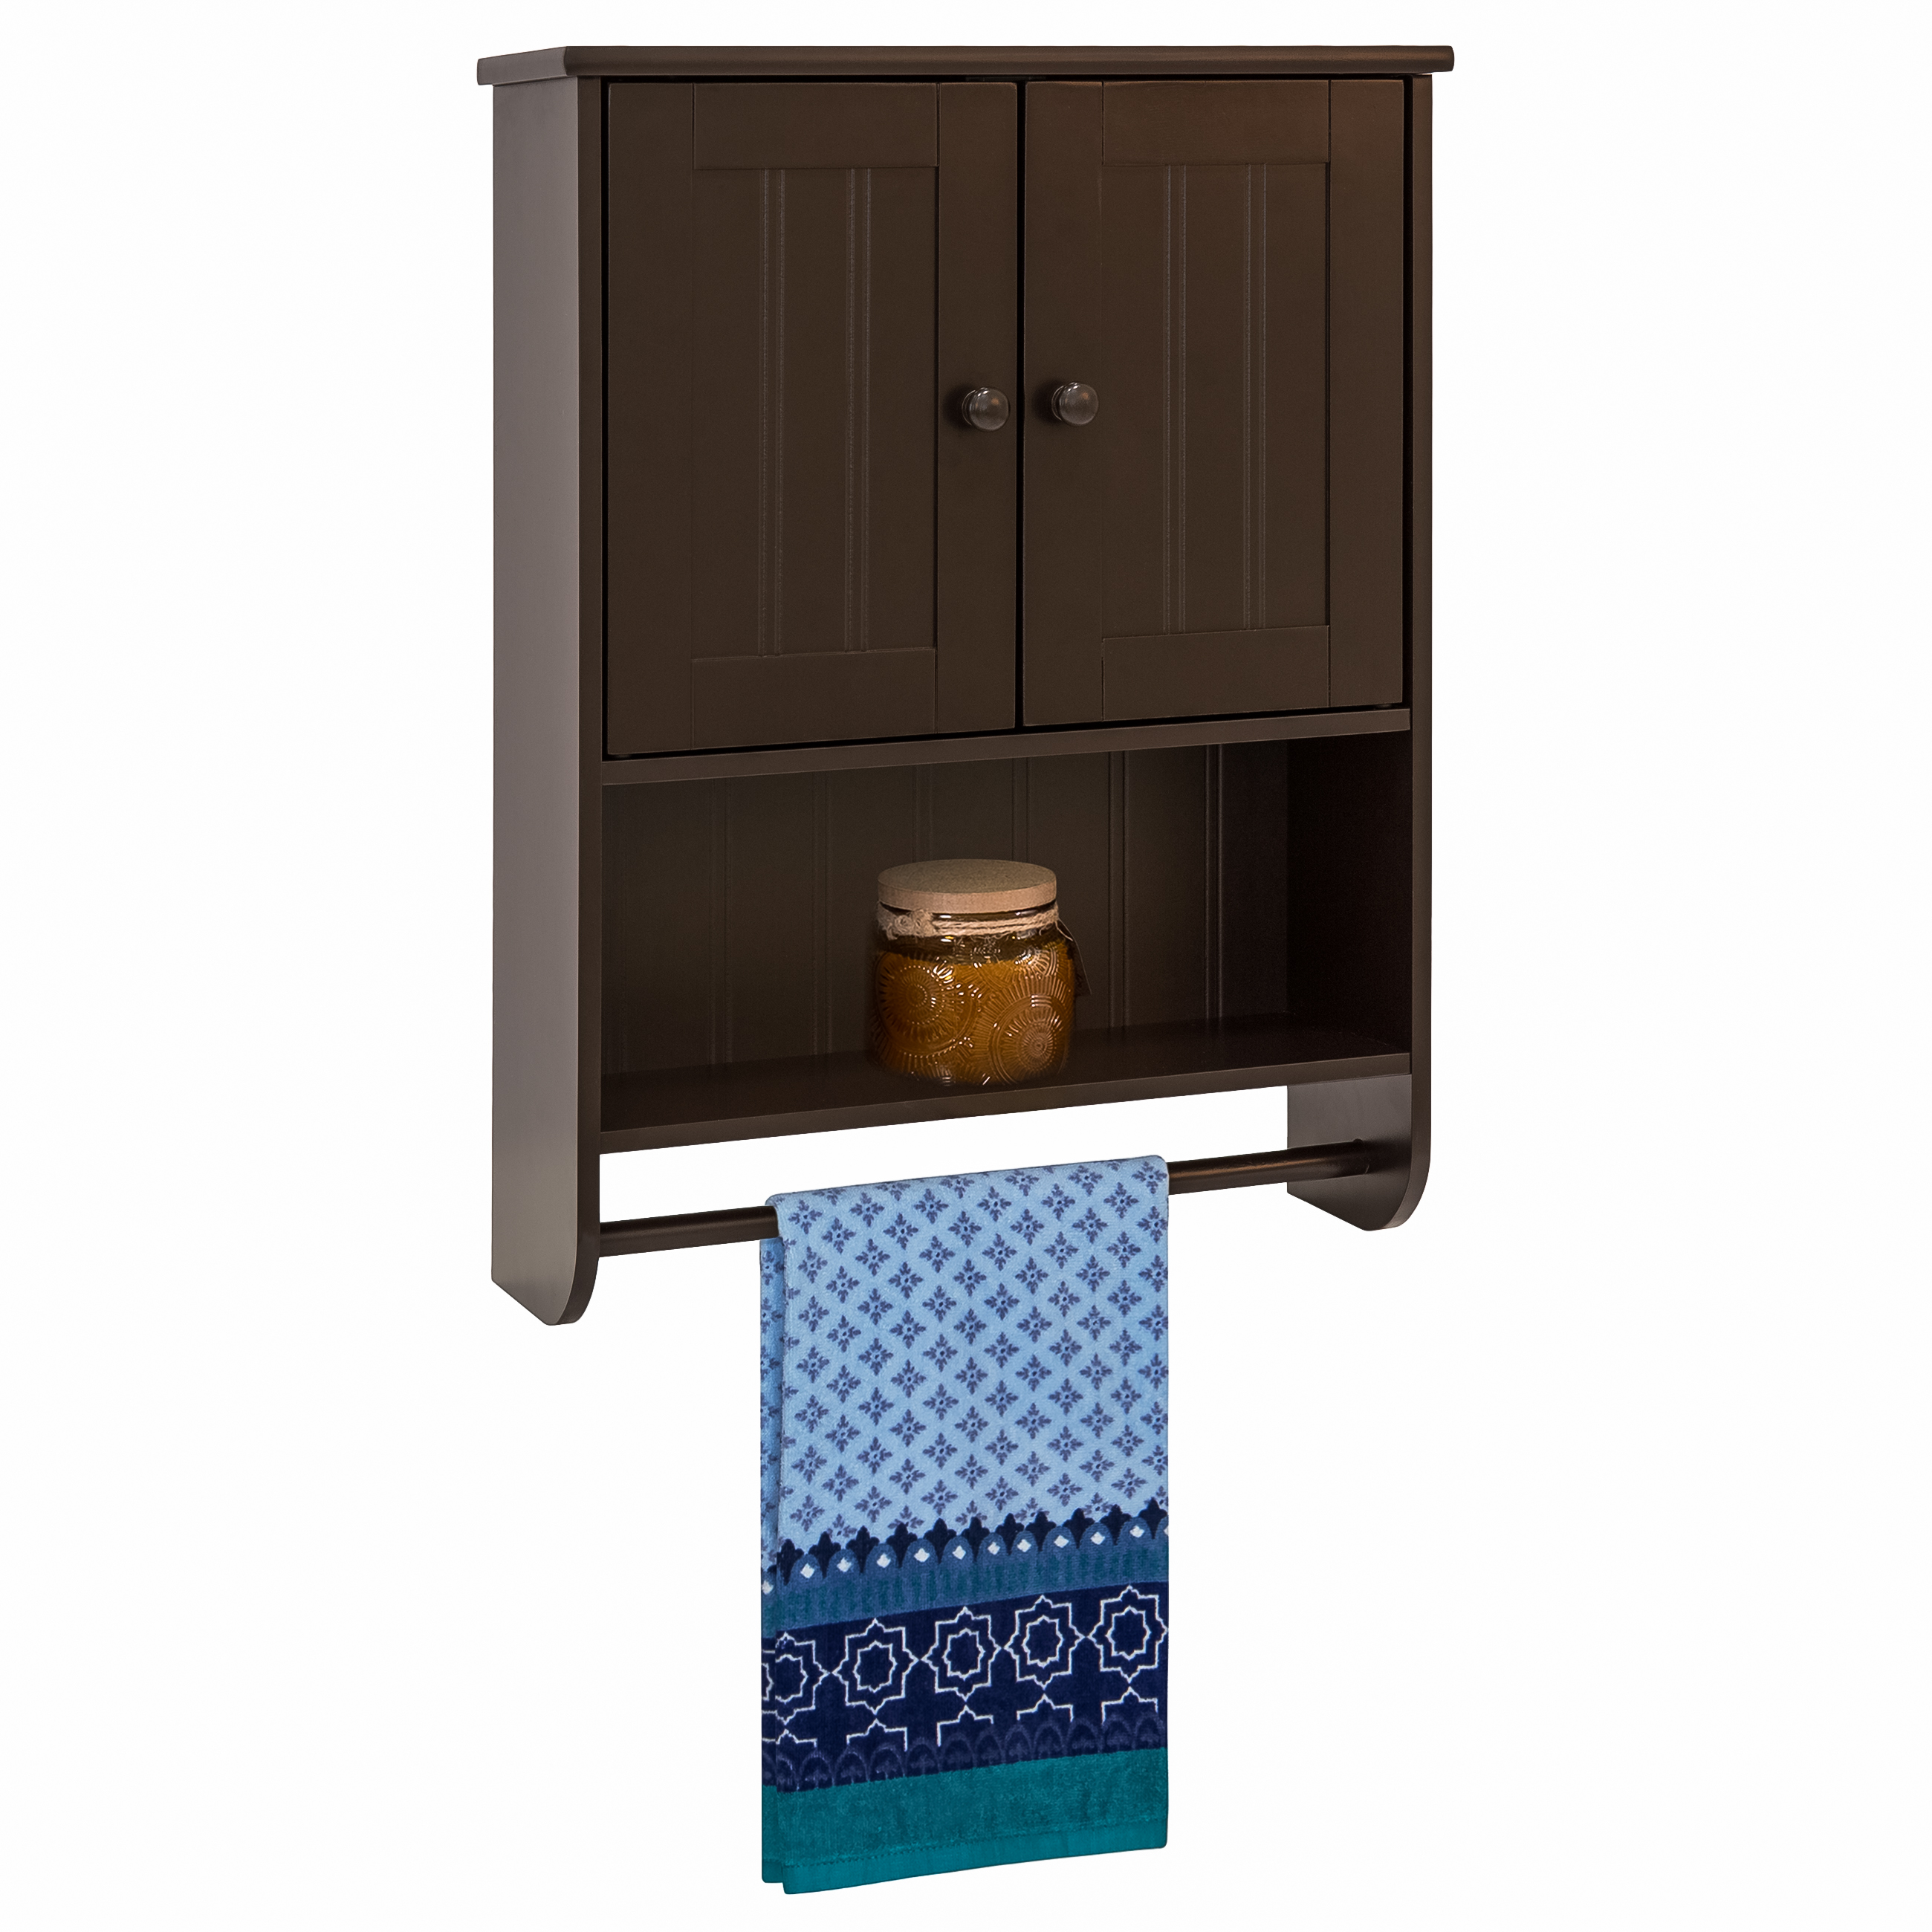 Best Choice Products Double Doors Bathroom Wall Storage Cabinet (Espresso  Brown)